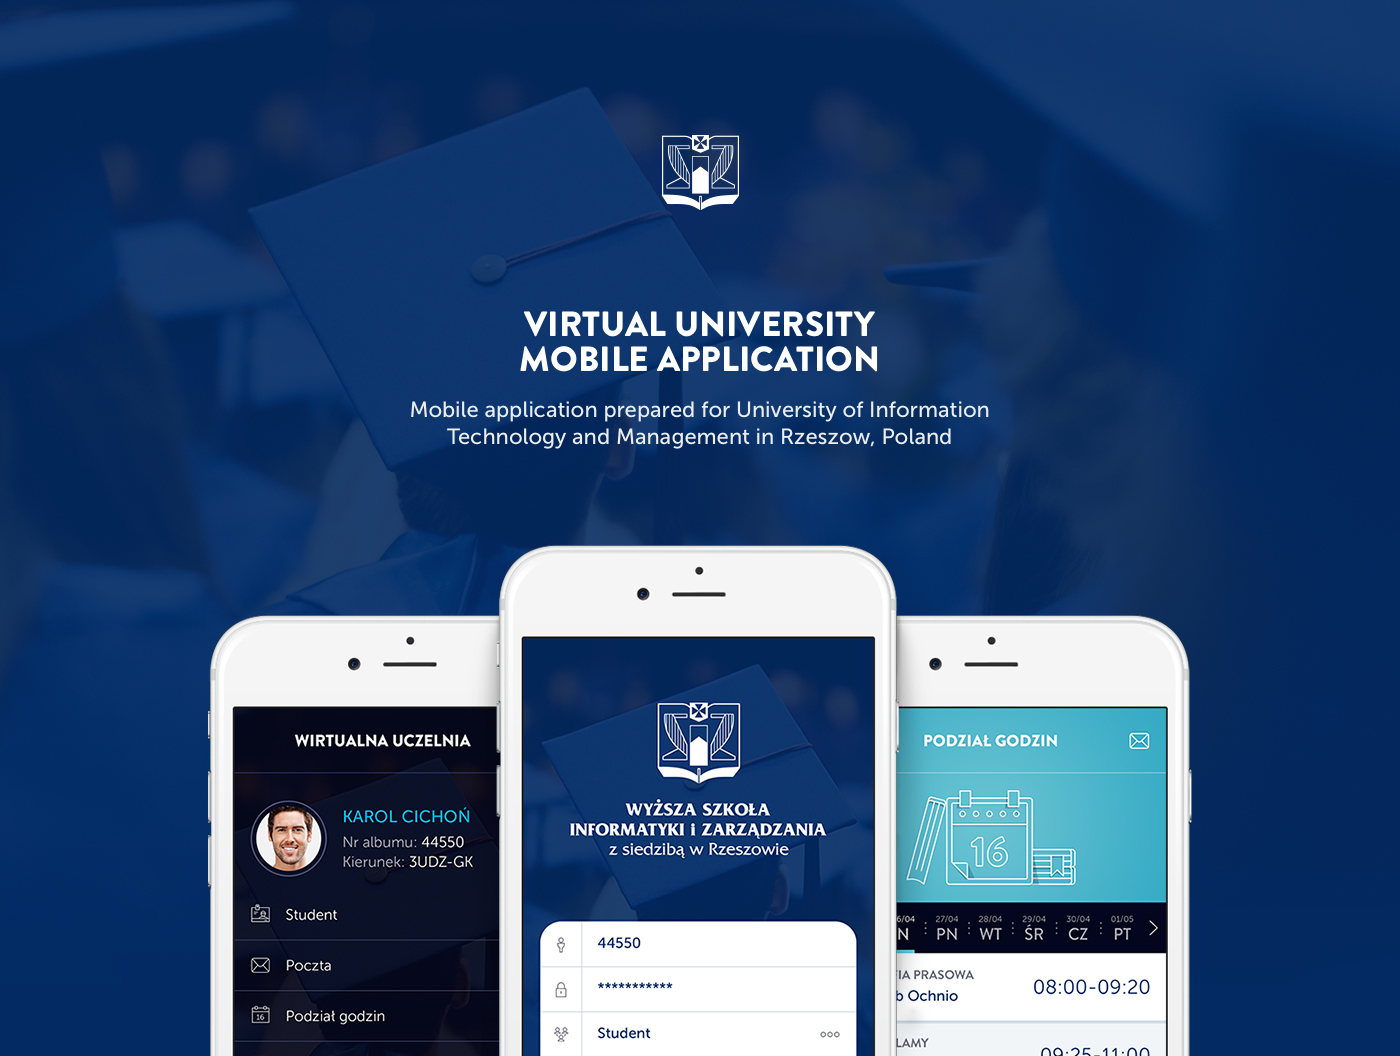 mobile,application,ios,phone,iphone,Virtual University,virtual,University,University of Information,technology and management,in Rzeszow,poland,cichonkarol.com,cichonkarol